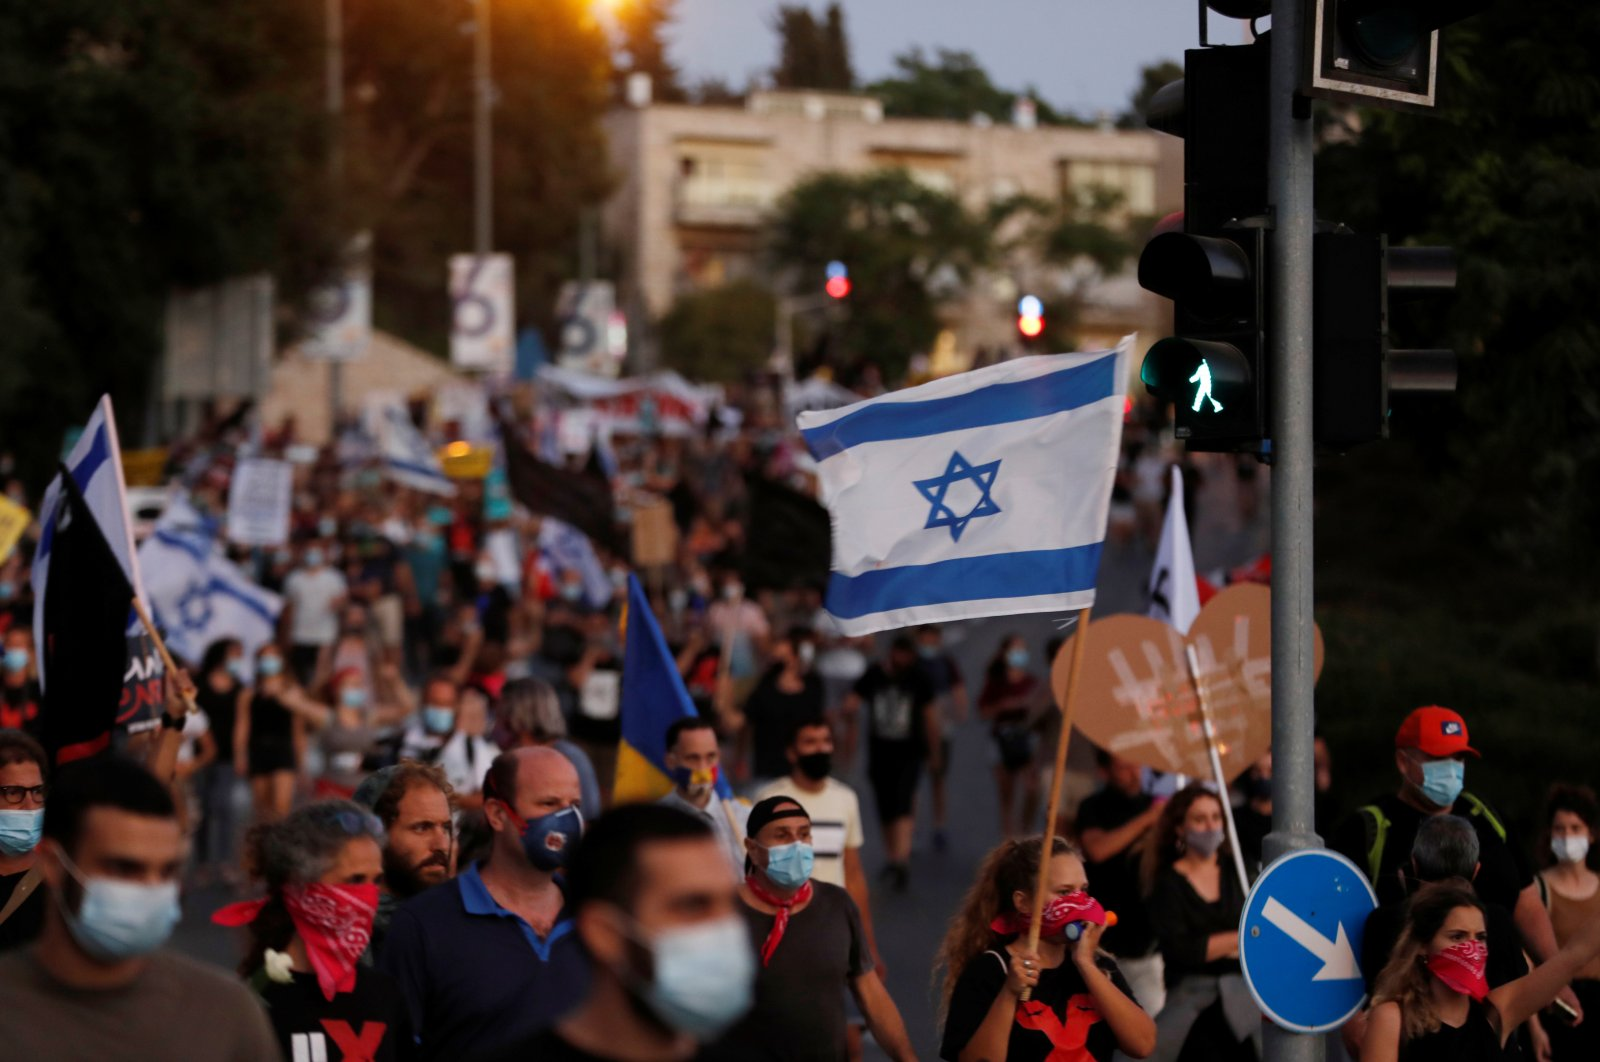 Israelis march as they protest against Israeli Prime Minister Benjamin Netanyahu and his government's response to the financial fallout of the coronavirus disease crisis in Jerusalem, July 21, 2020. (REUTERS)